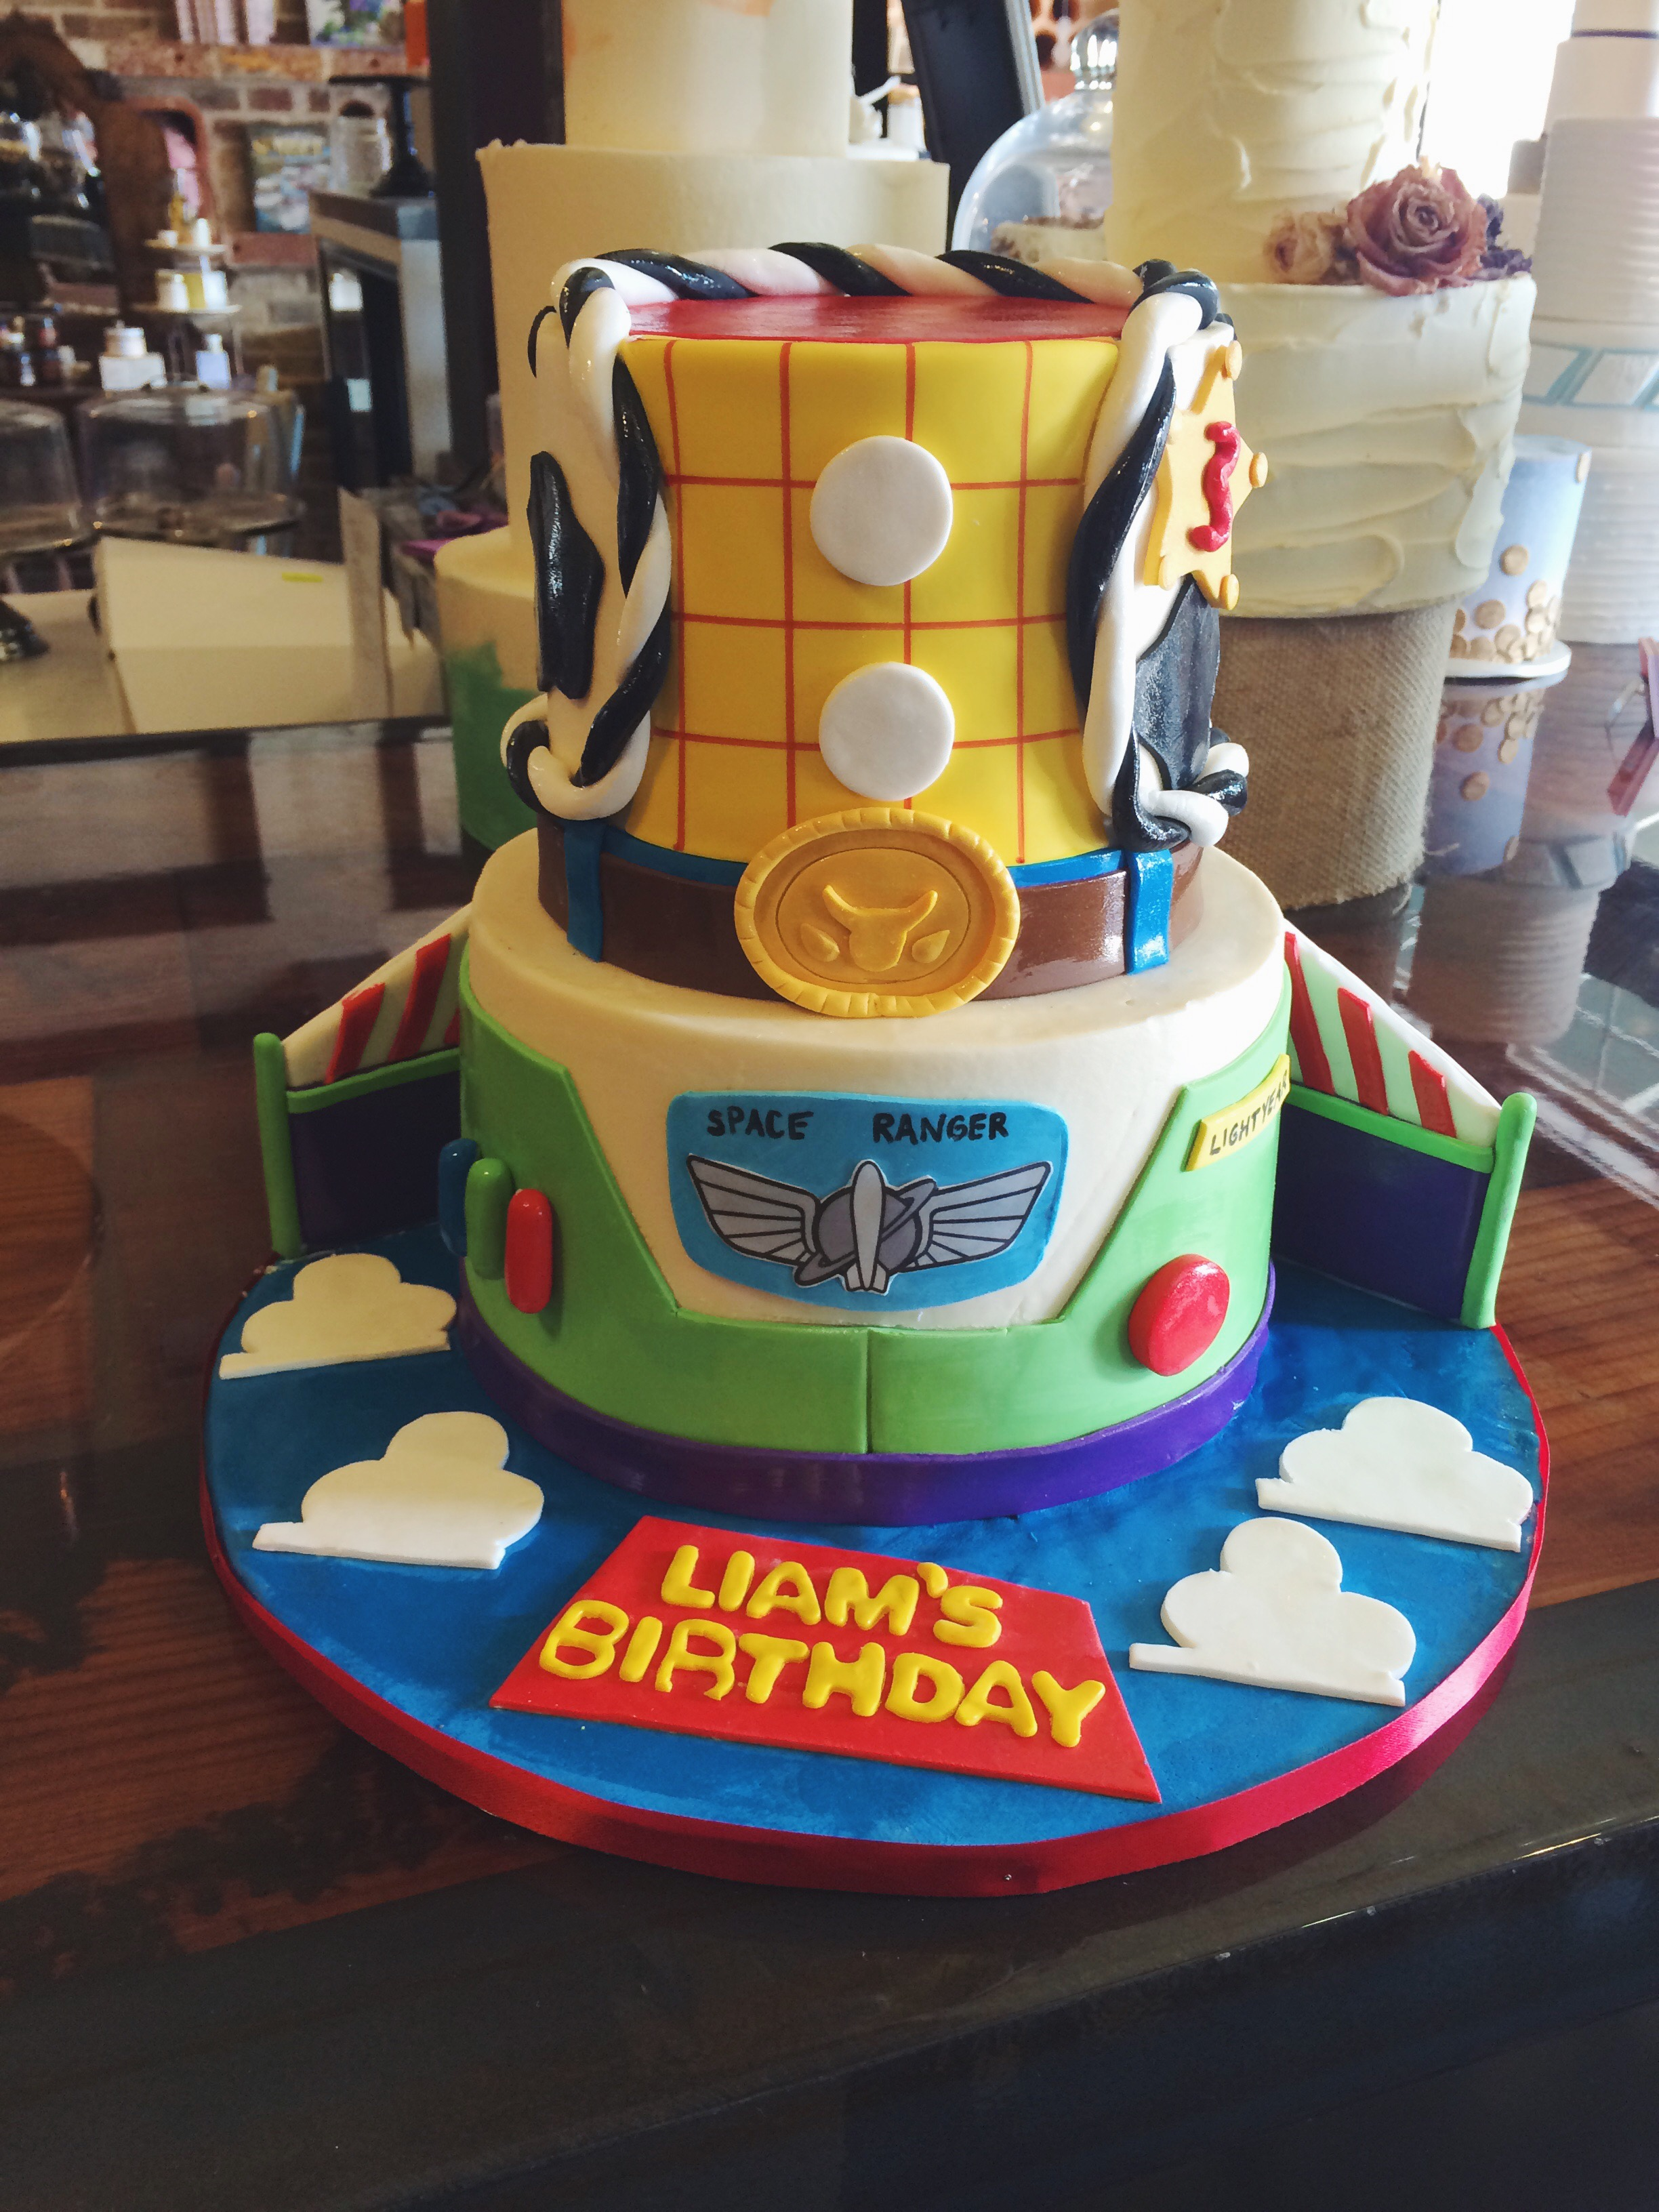 Toy_Story_cake_two_tier_Kids_Birthday_Woody_Buzz_Lightyear_Party_Fondant_SugarBeeSweets.JPG